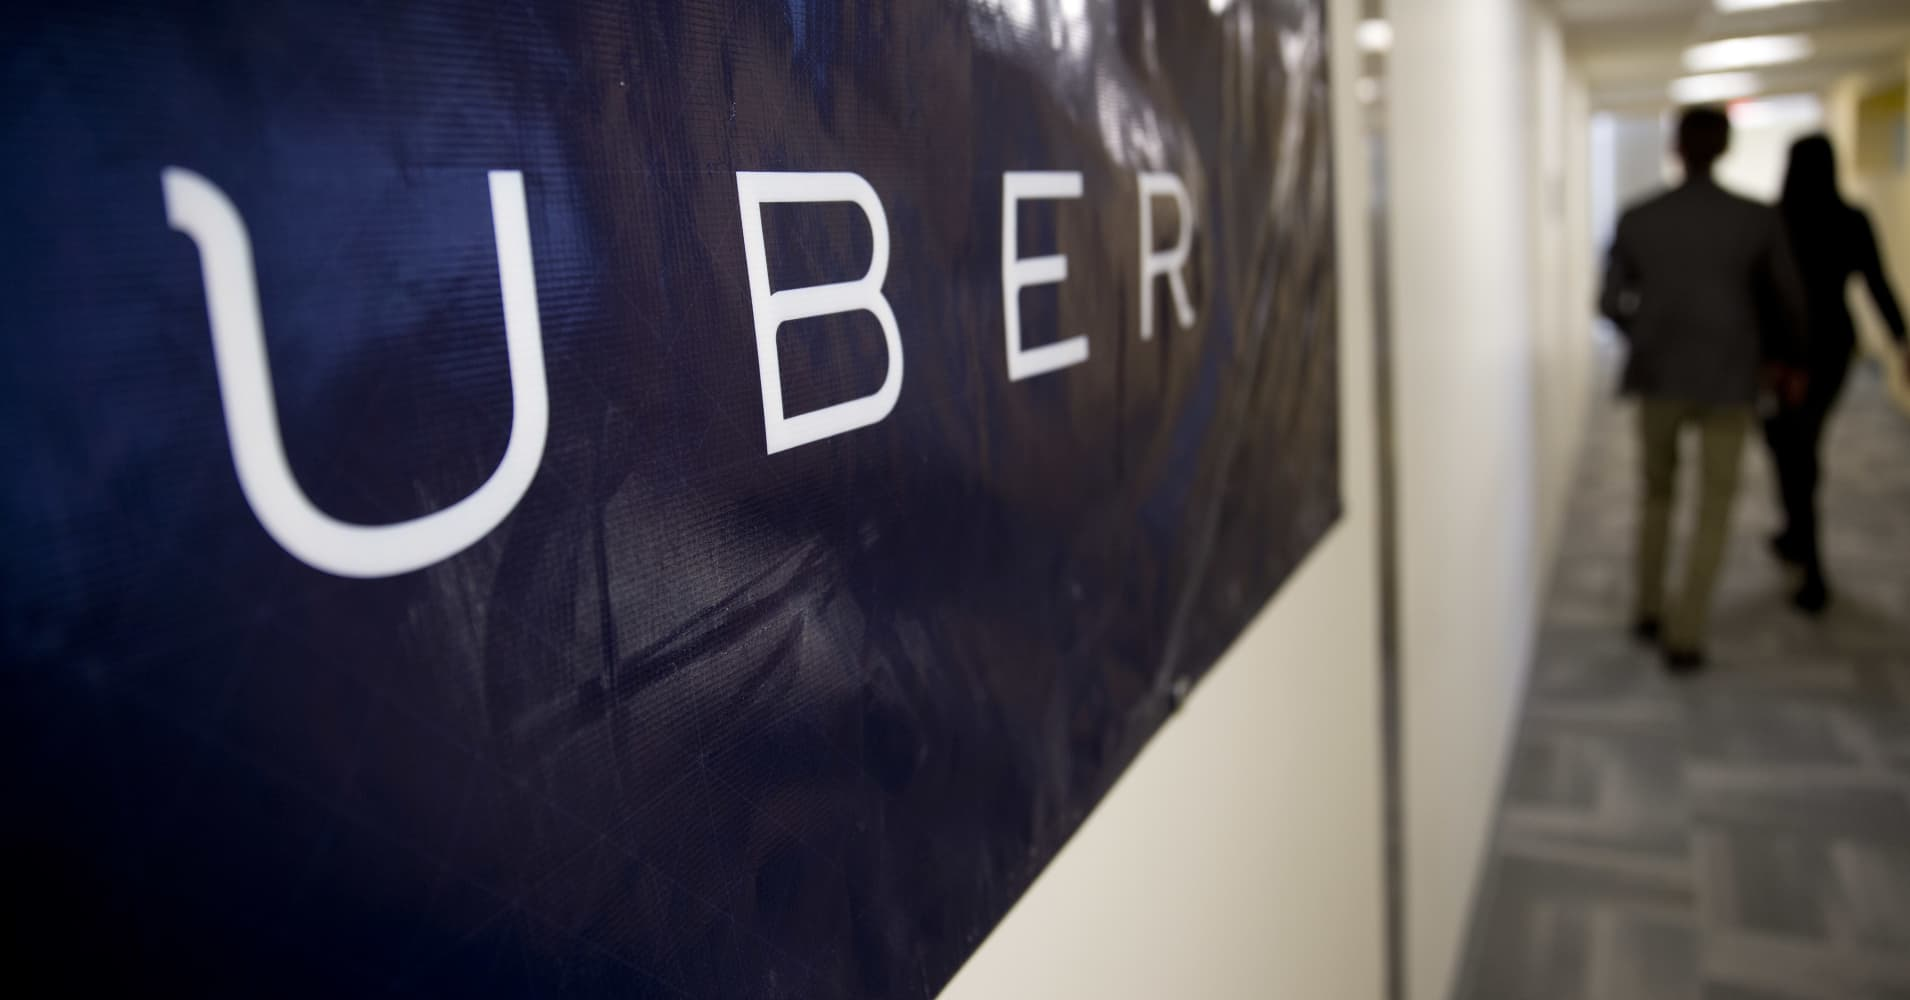 Two executives to leave Uber, adding to departures